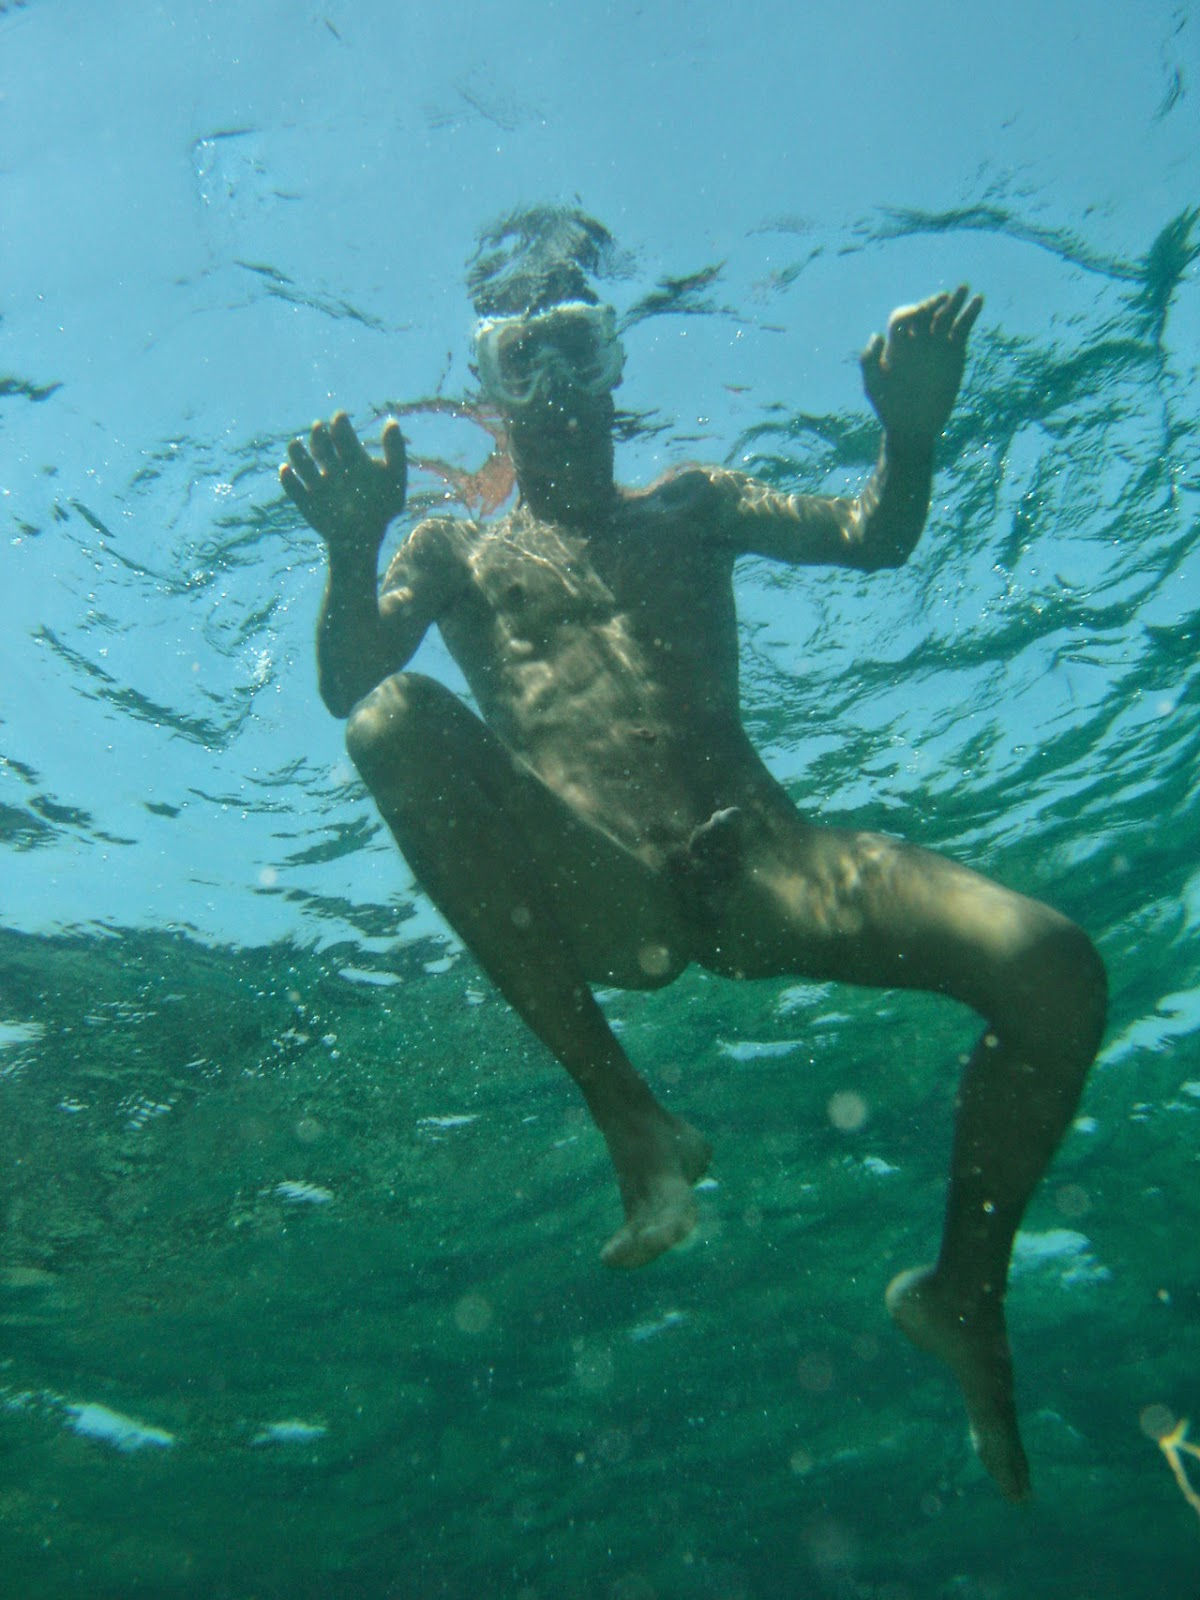 from Kolten nude scuba diving movie